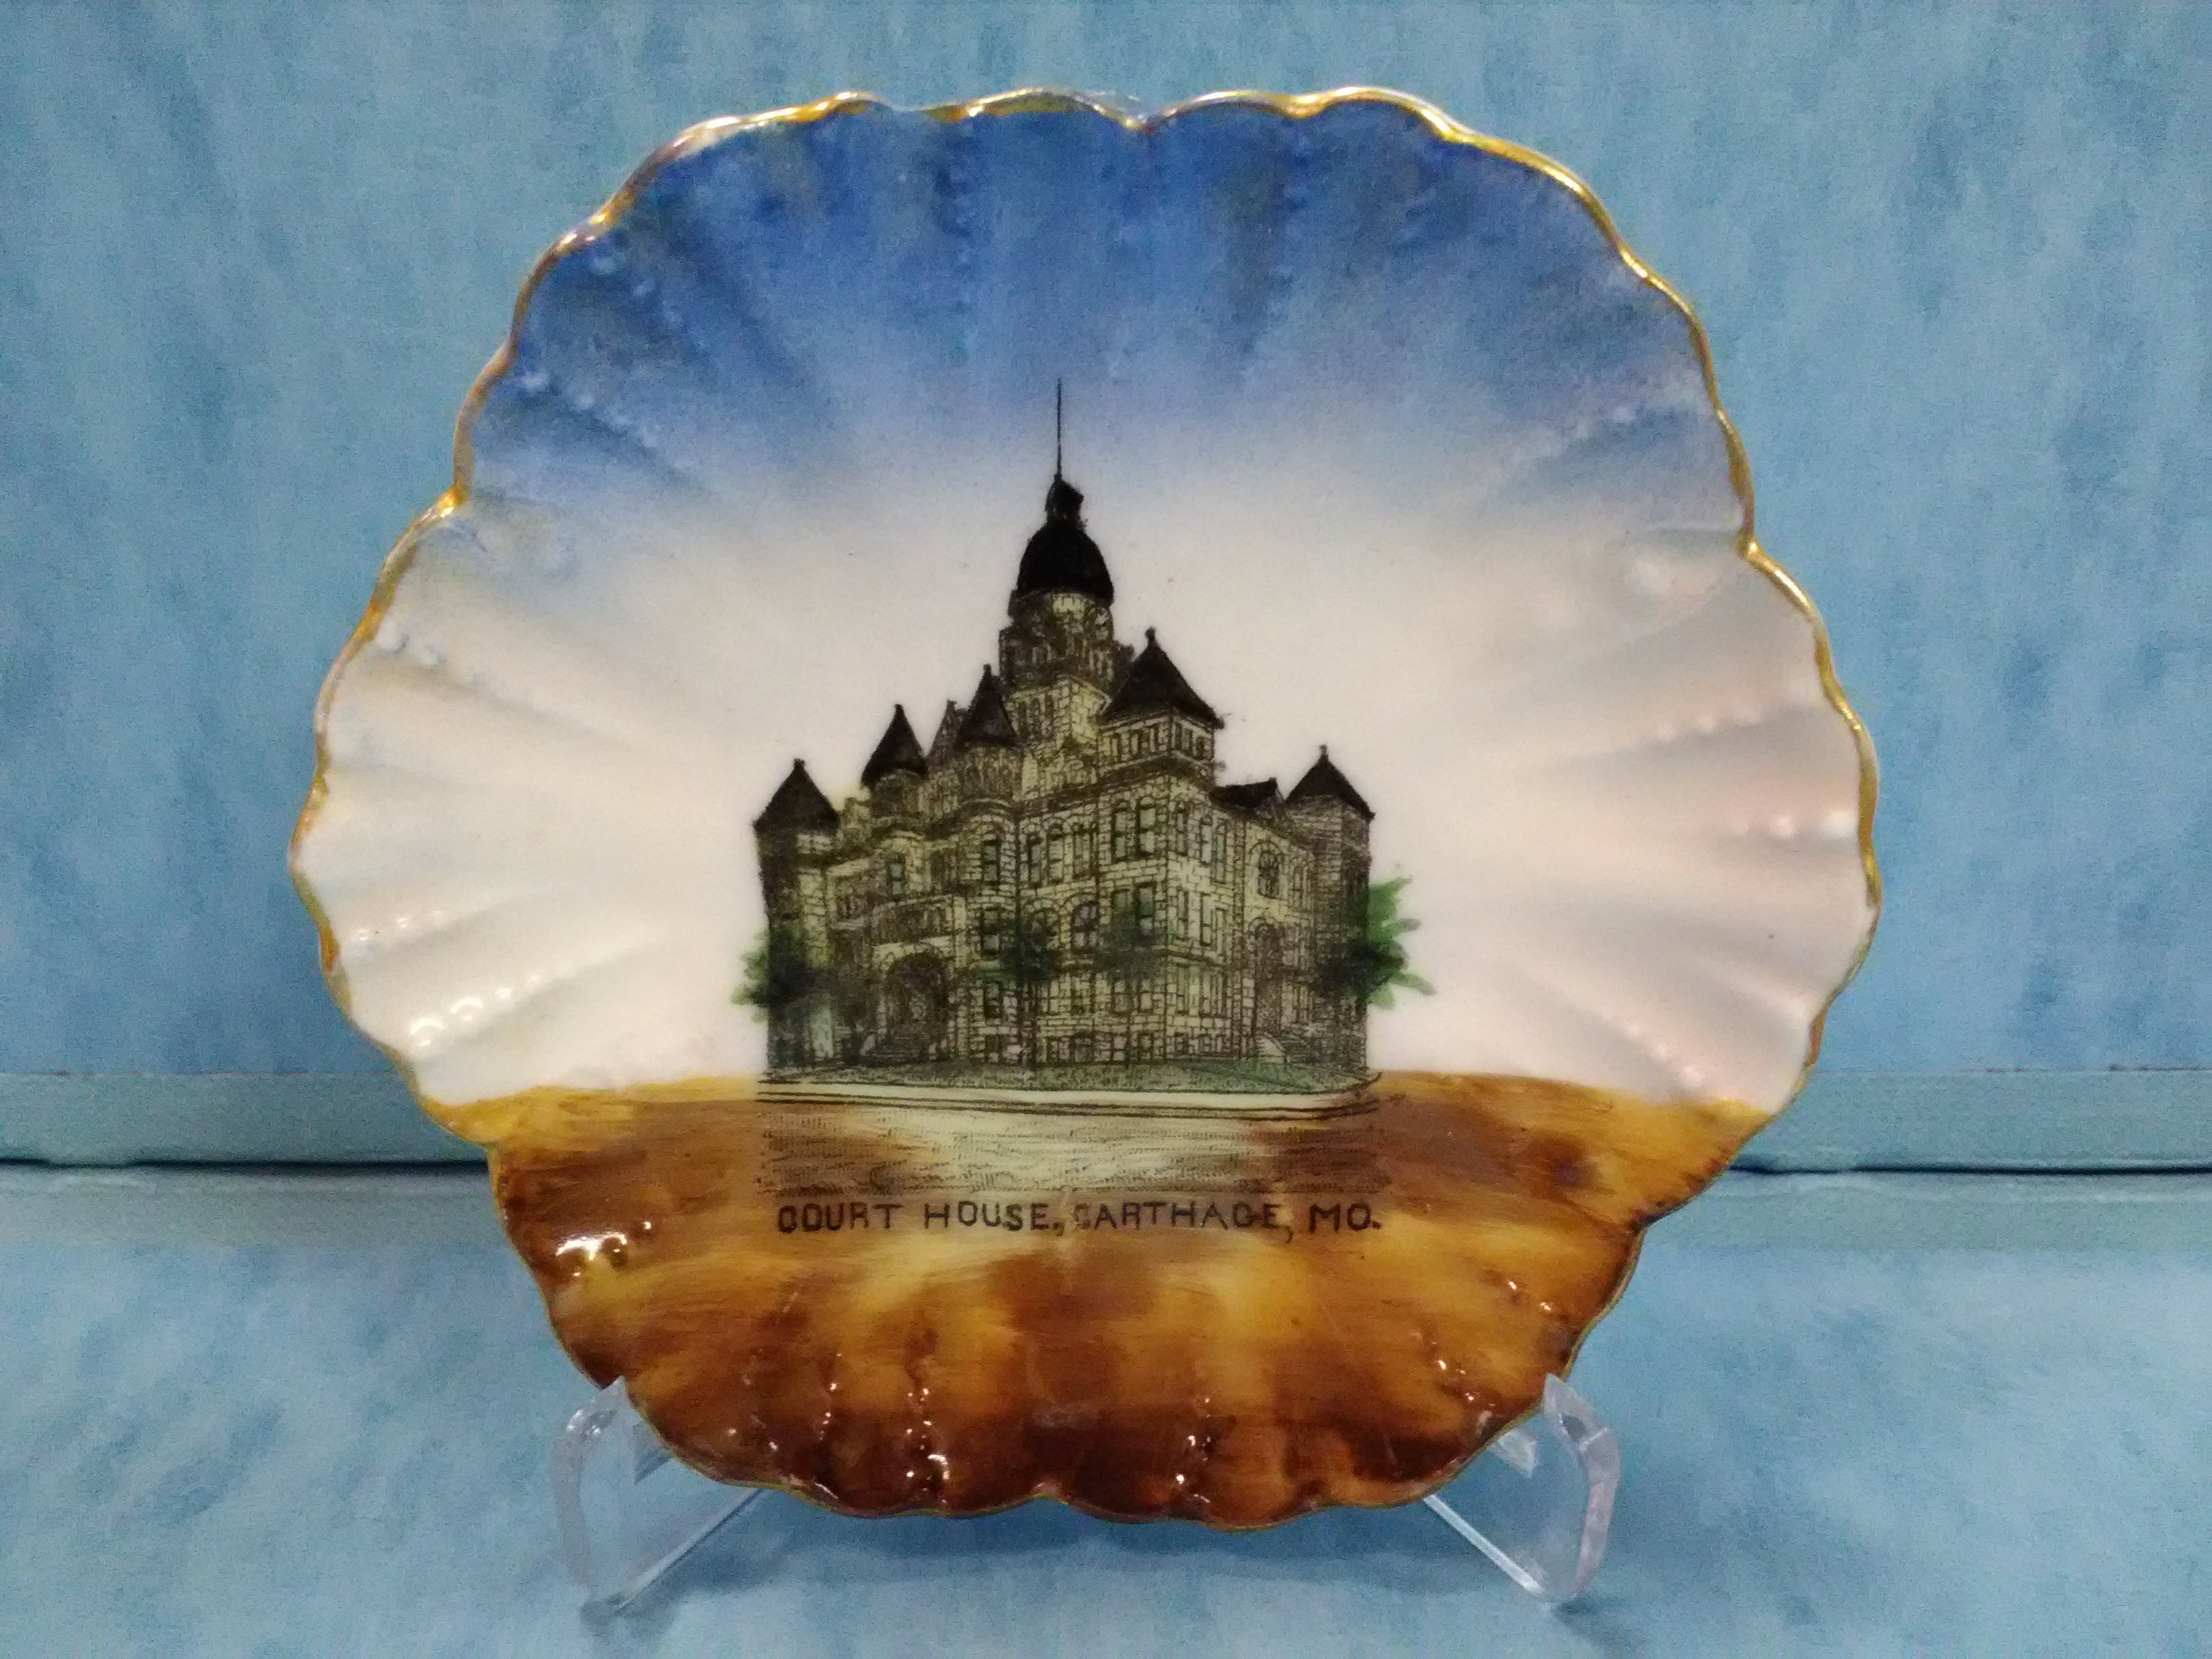 Front of pin dish sold in W. T. Roach store at this location. The hand-painted decoration features an image of the Jasper County Courthouse built in 1894-95.